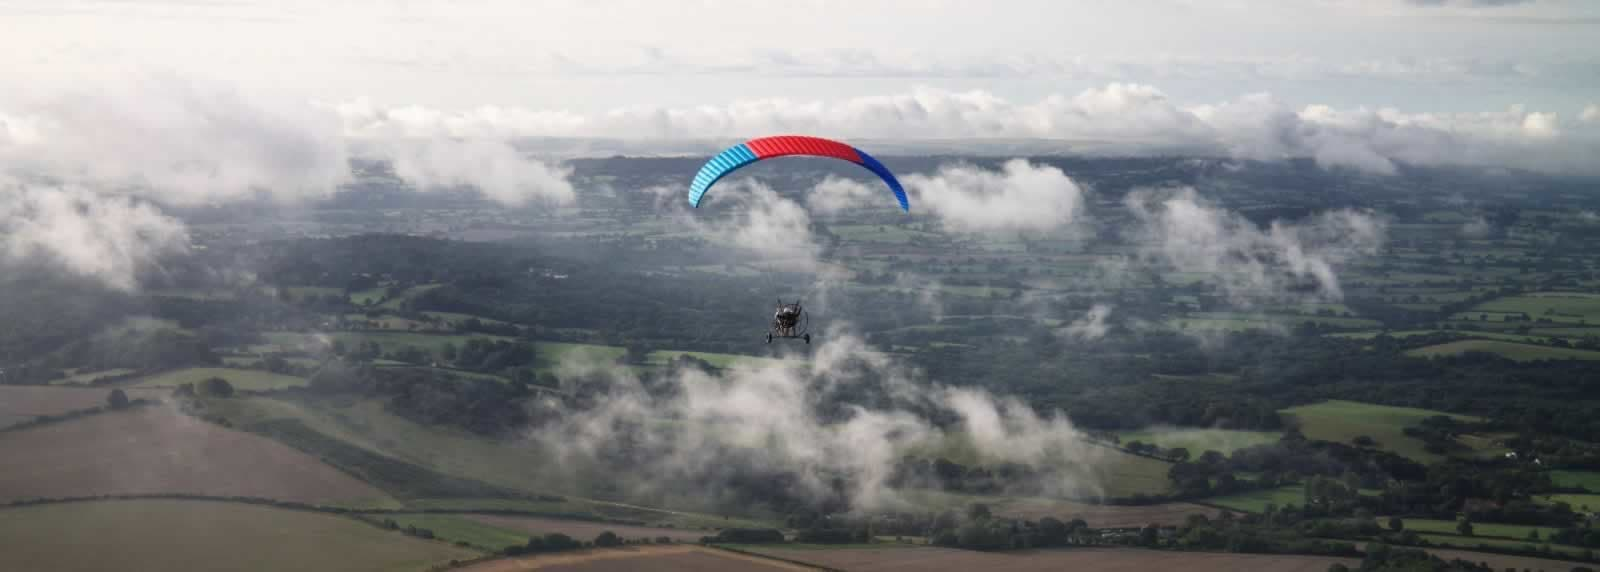 Paramotoring in the UK